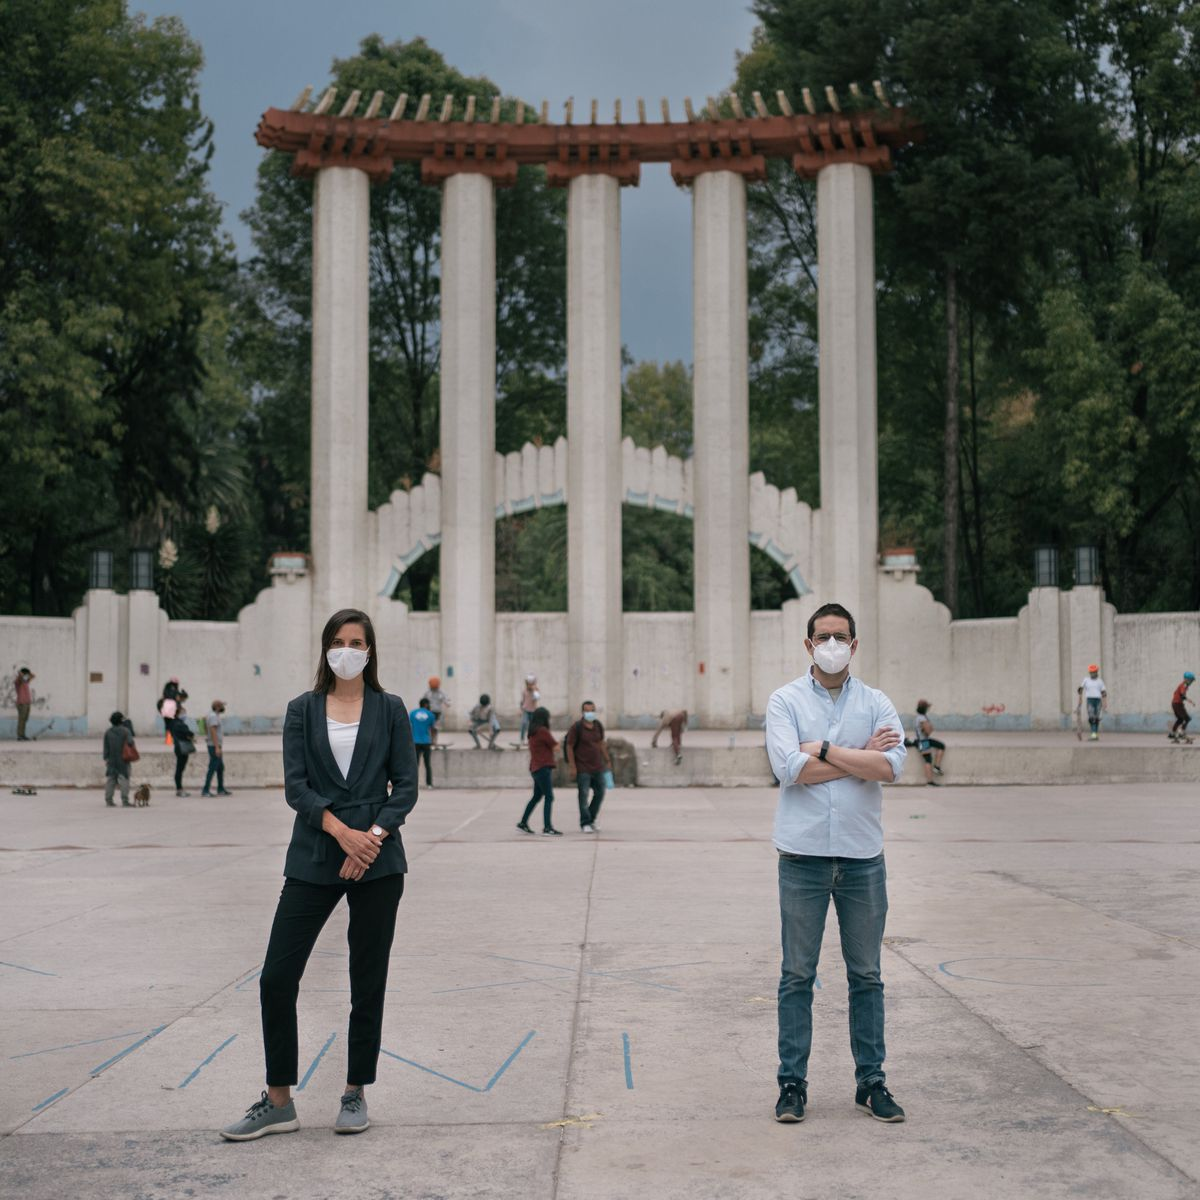 Economic consultant Laurianne Despeghel and software developer Mario Romero Zavala pose for a portrait at a park in Mexico City's Condesa neighborhood. (Photo for The Washington Post by Luis Antonio Rojas)